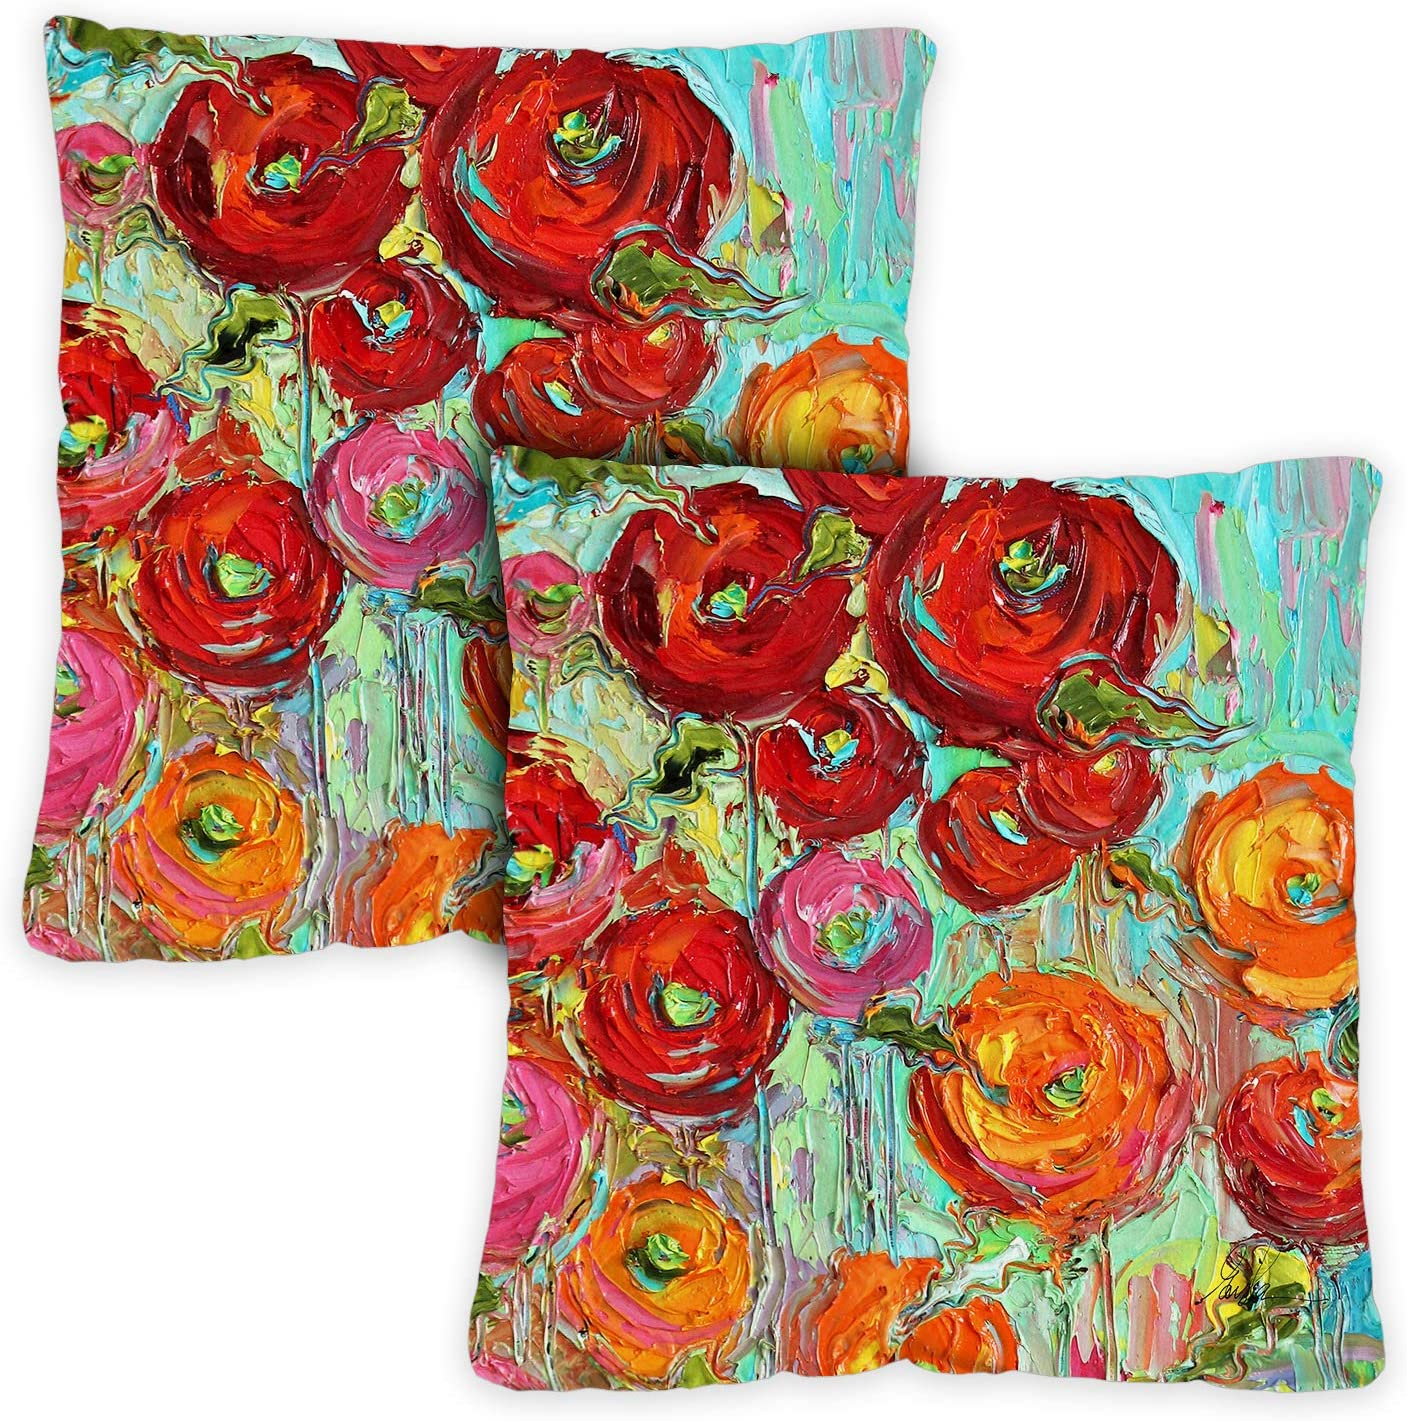 Toland Home Garden Fabulous Flowers 18 x 18 Inch Decorative Indoor Pillow Case Only (2-Pack)